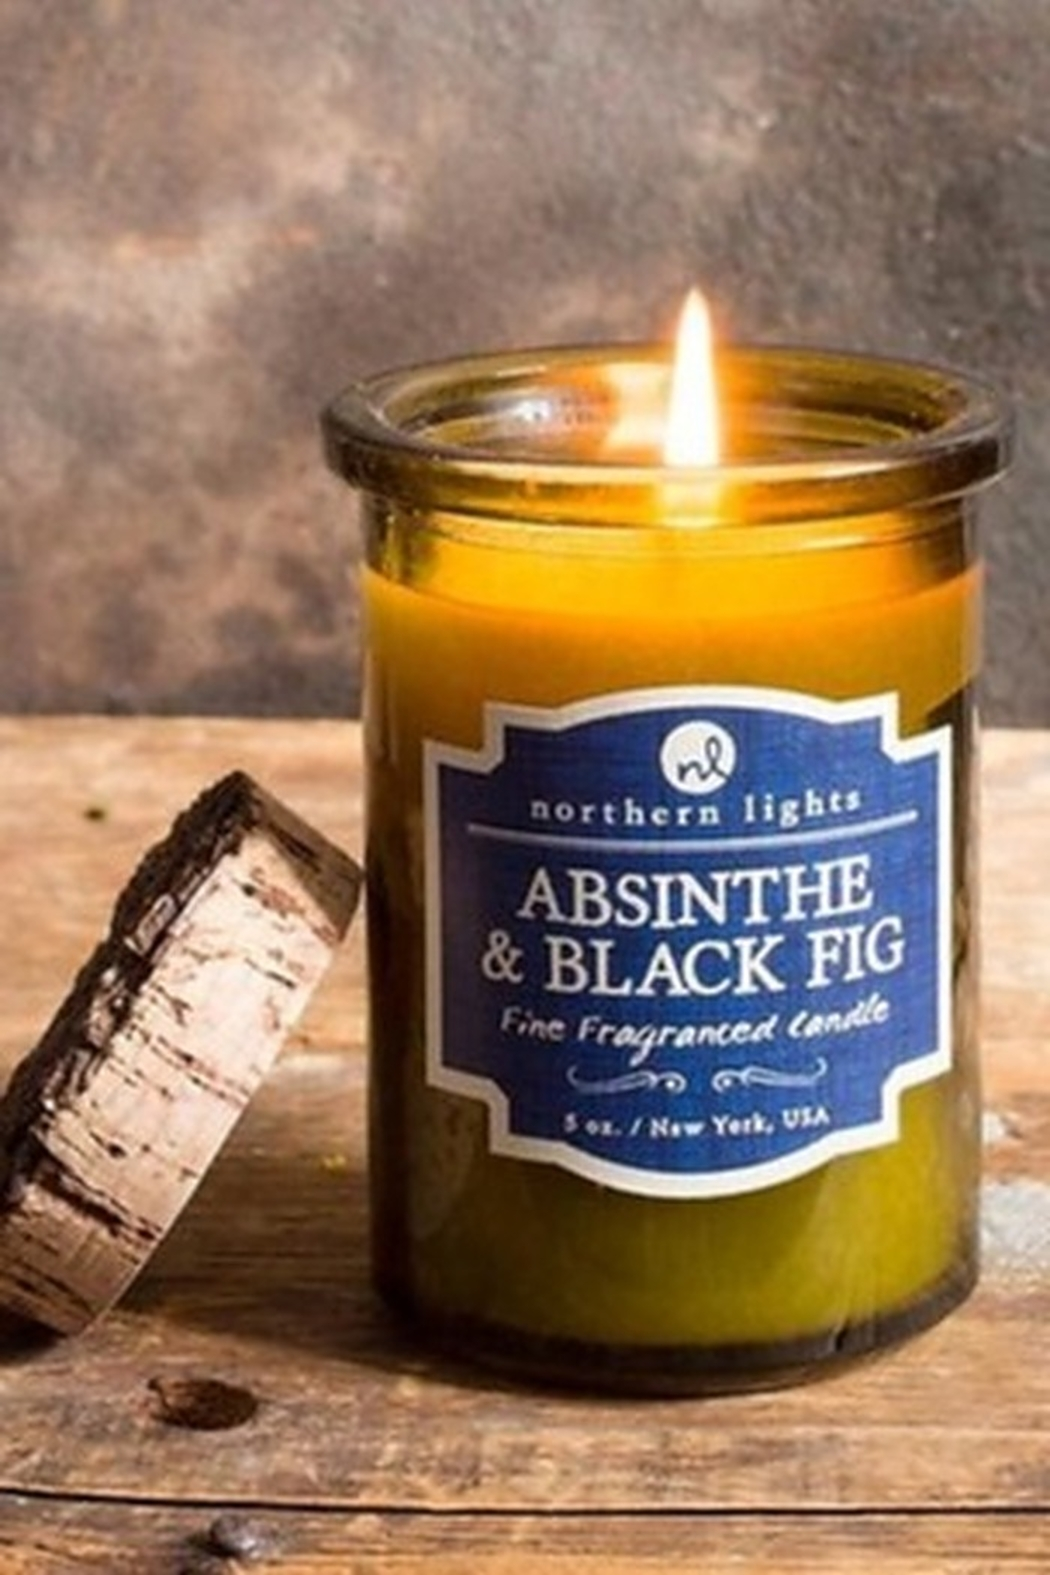 Northern Lights Absinthe and Black Fig Candle - Main Image